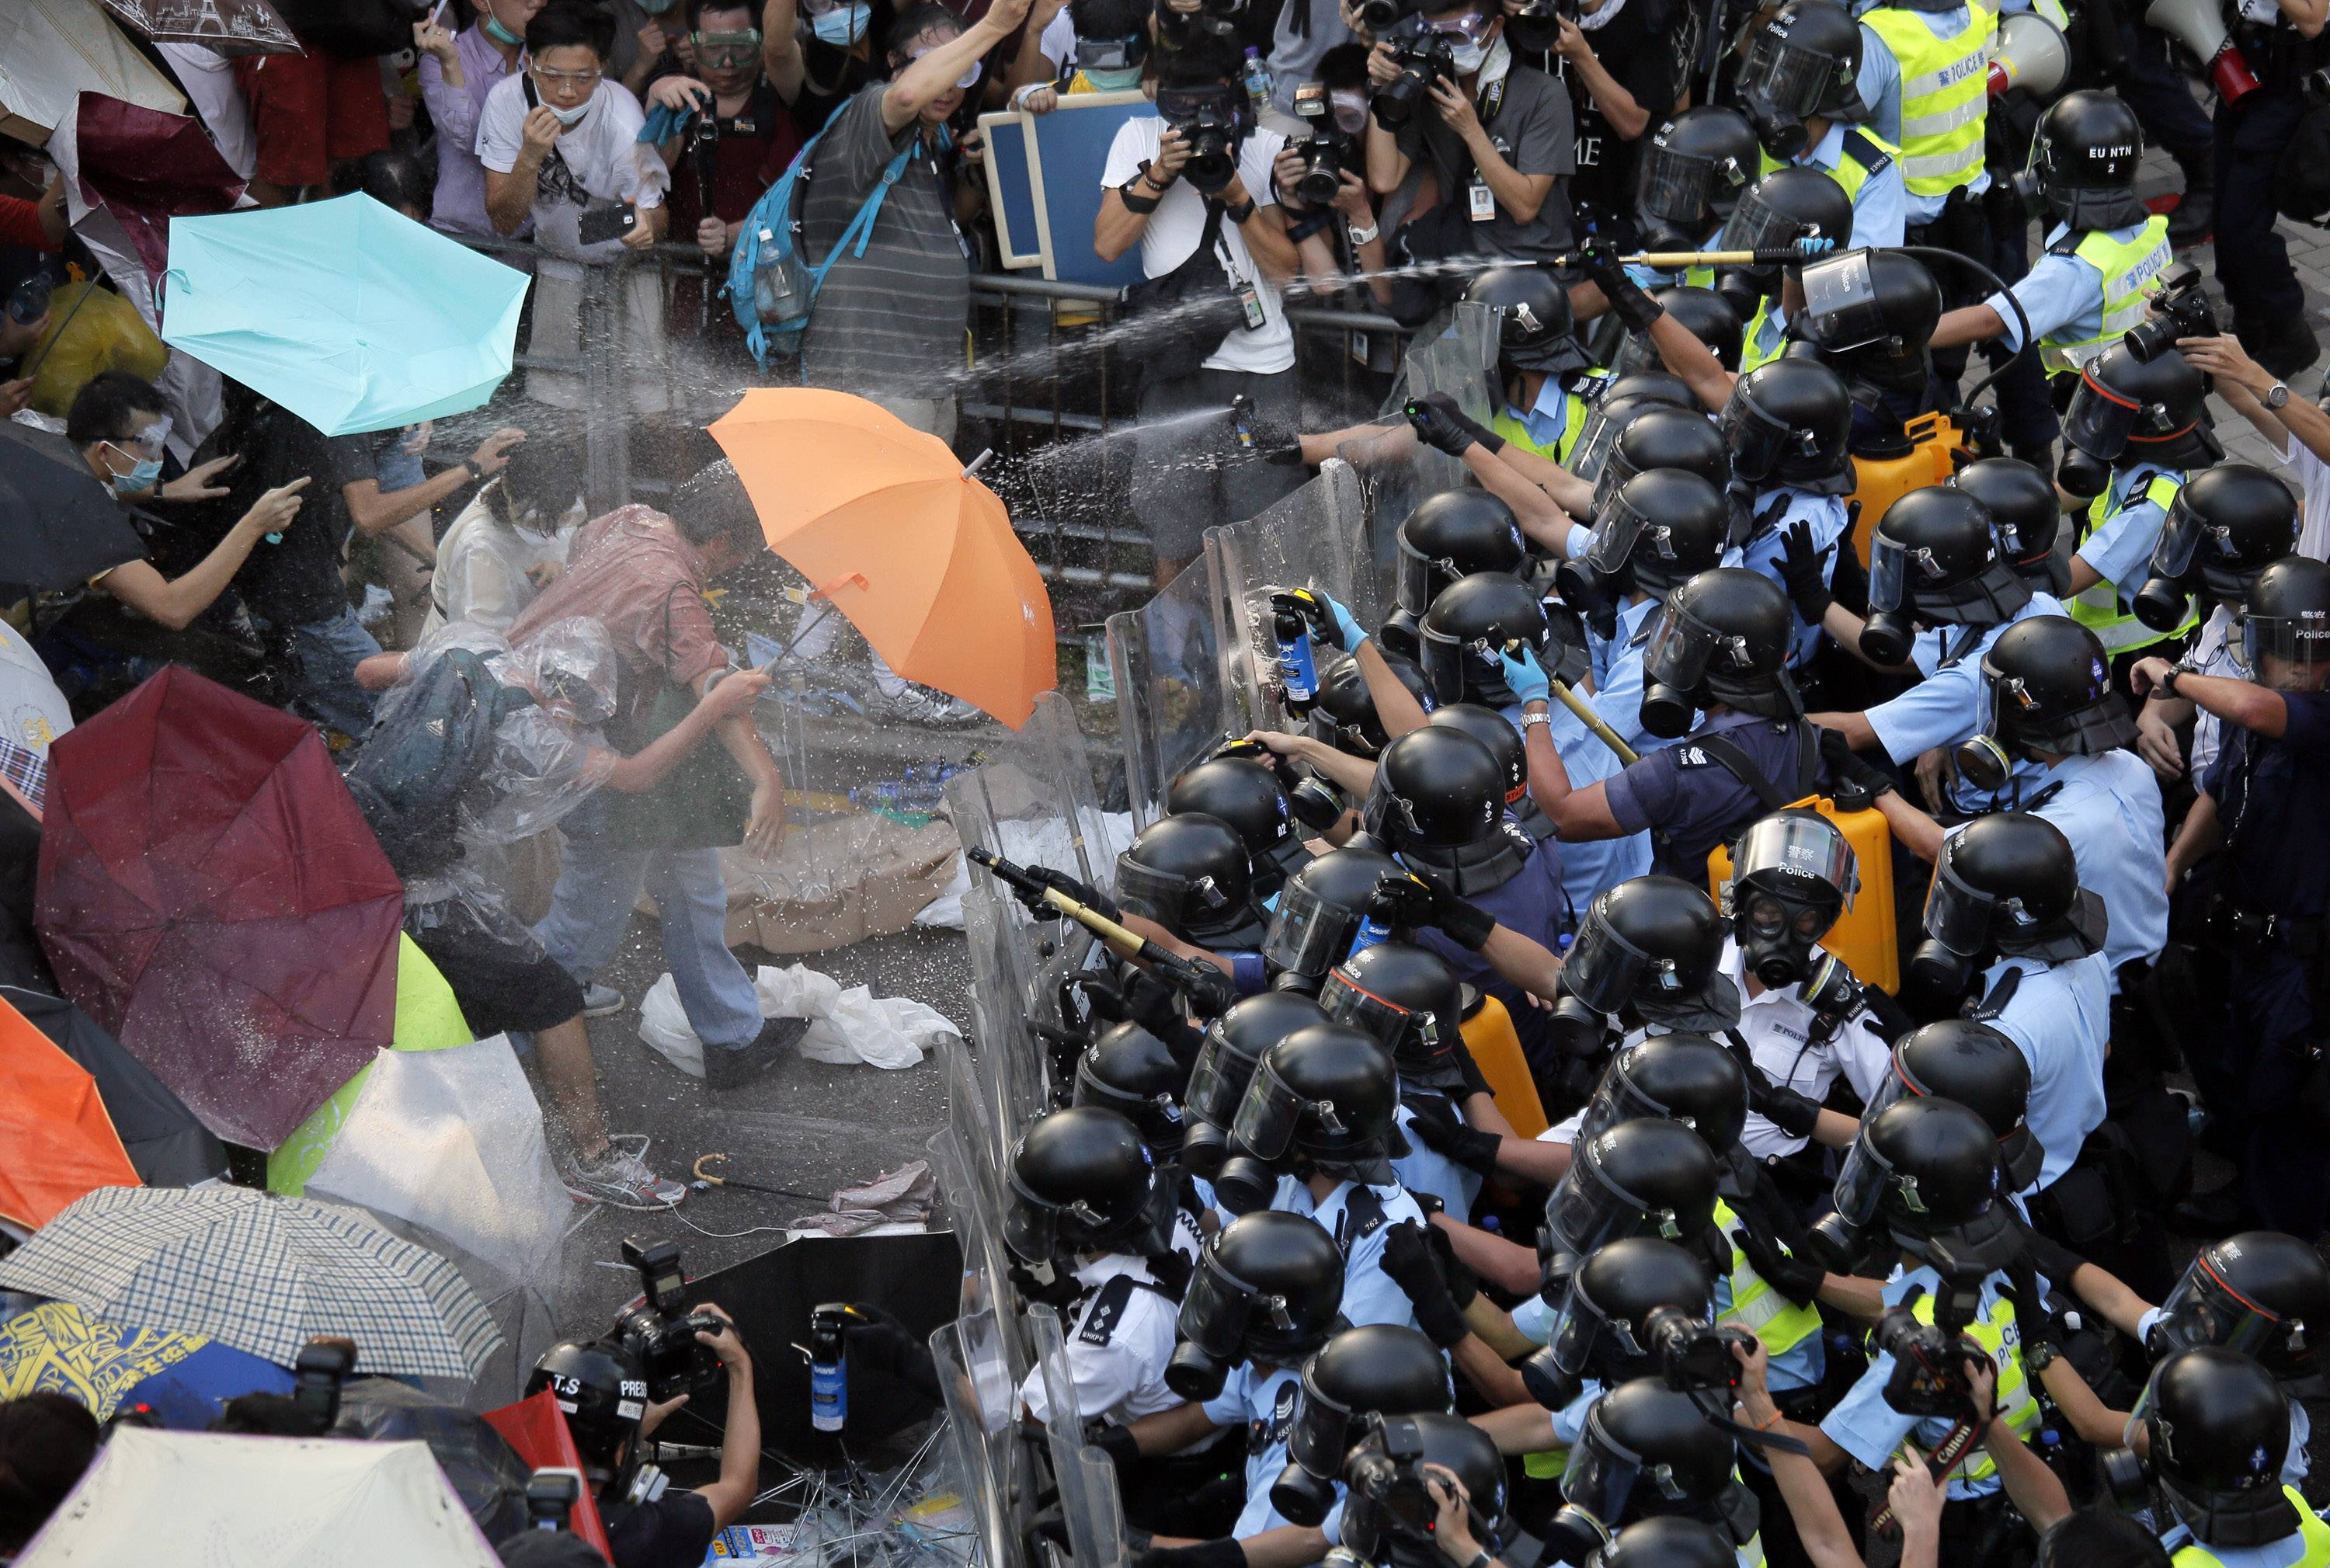 Riot police use pepper spray against protesters after thousands of people block a main road to the financial central district outside the government headquarters in Hong Kong on Sunday. Ubiquitous images in Hong Kong media with masses of unarmed students fending off pepper spray with umbrellas could not contrast more starkly with mainland China's virtual blackout of news about the territory's pro-democracy protests.